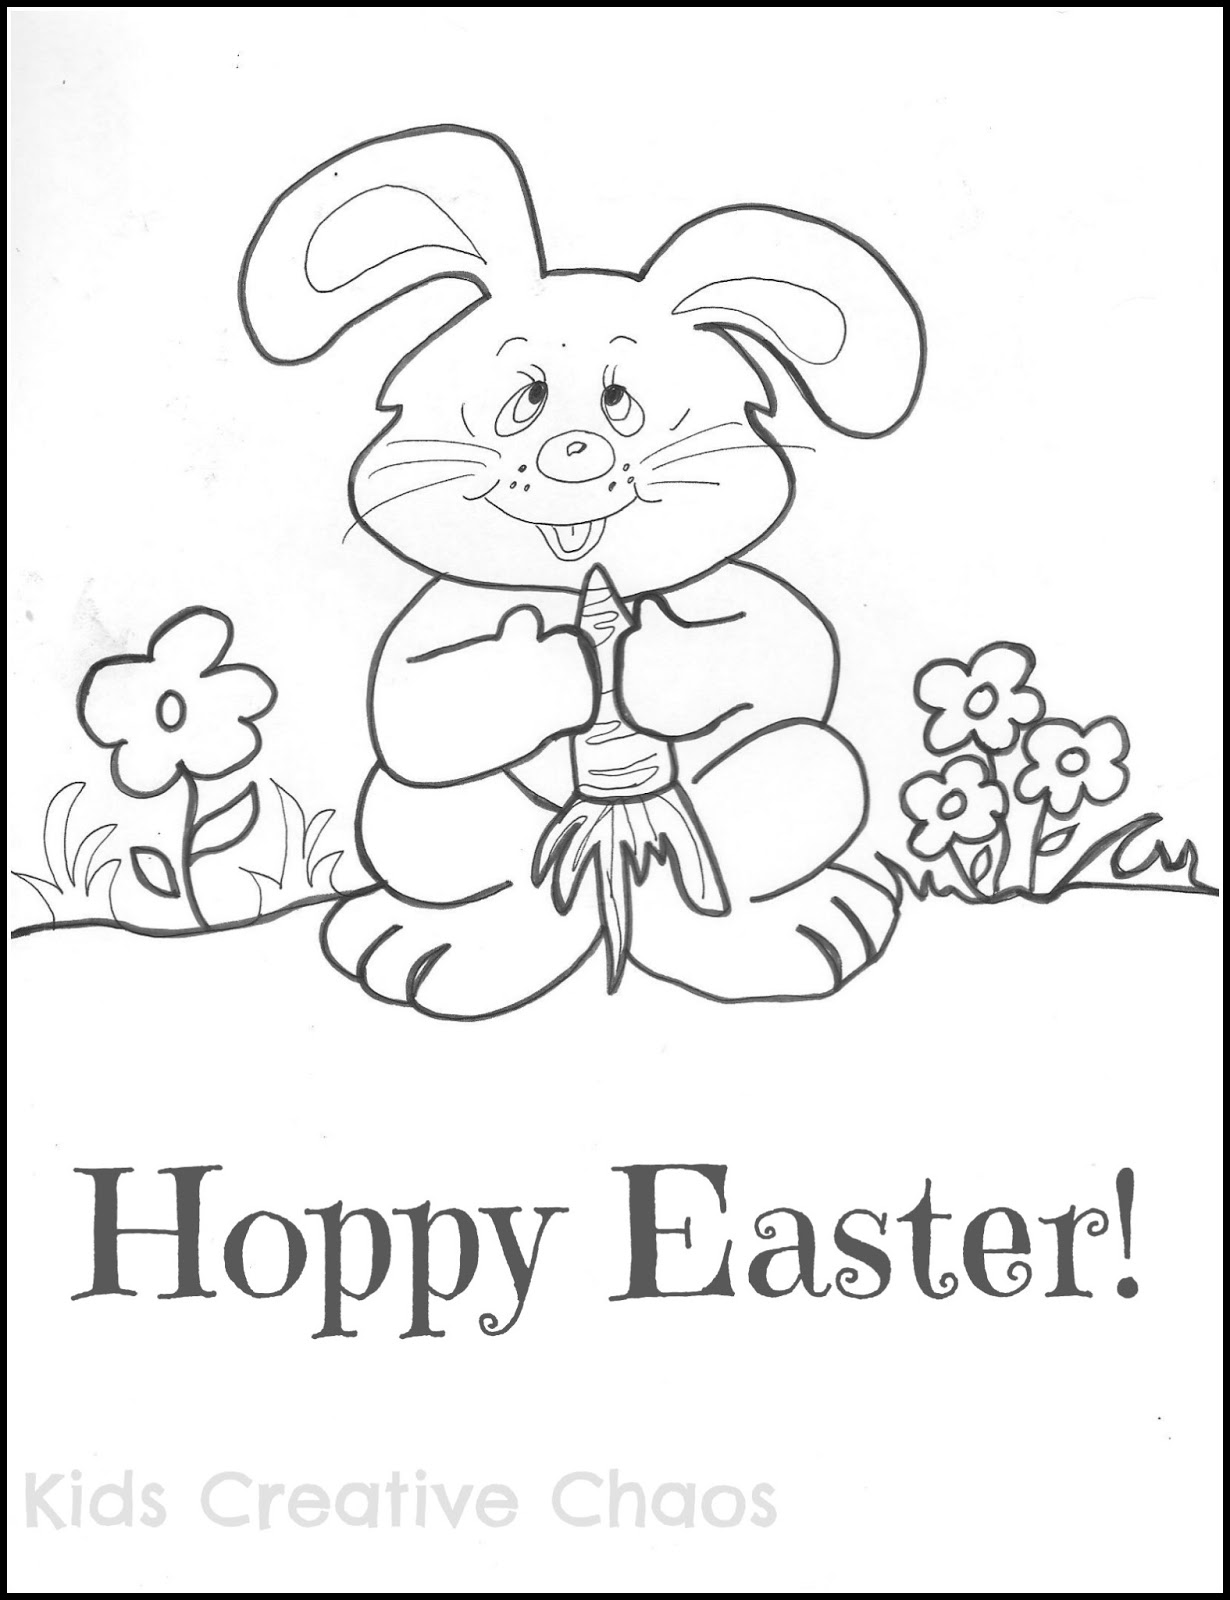 easter bunny coloring page printable for kids kids creative chaos